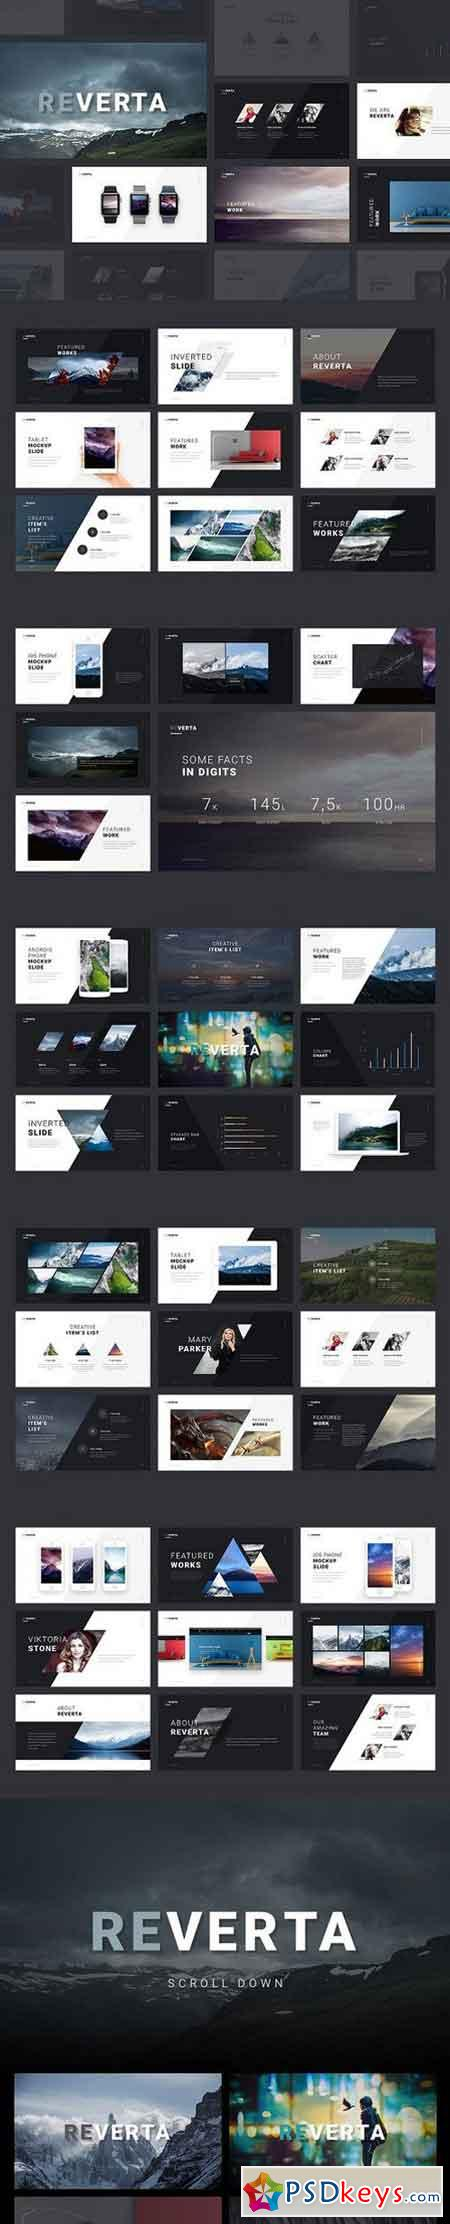 Keynote Poster Template